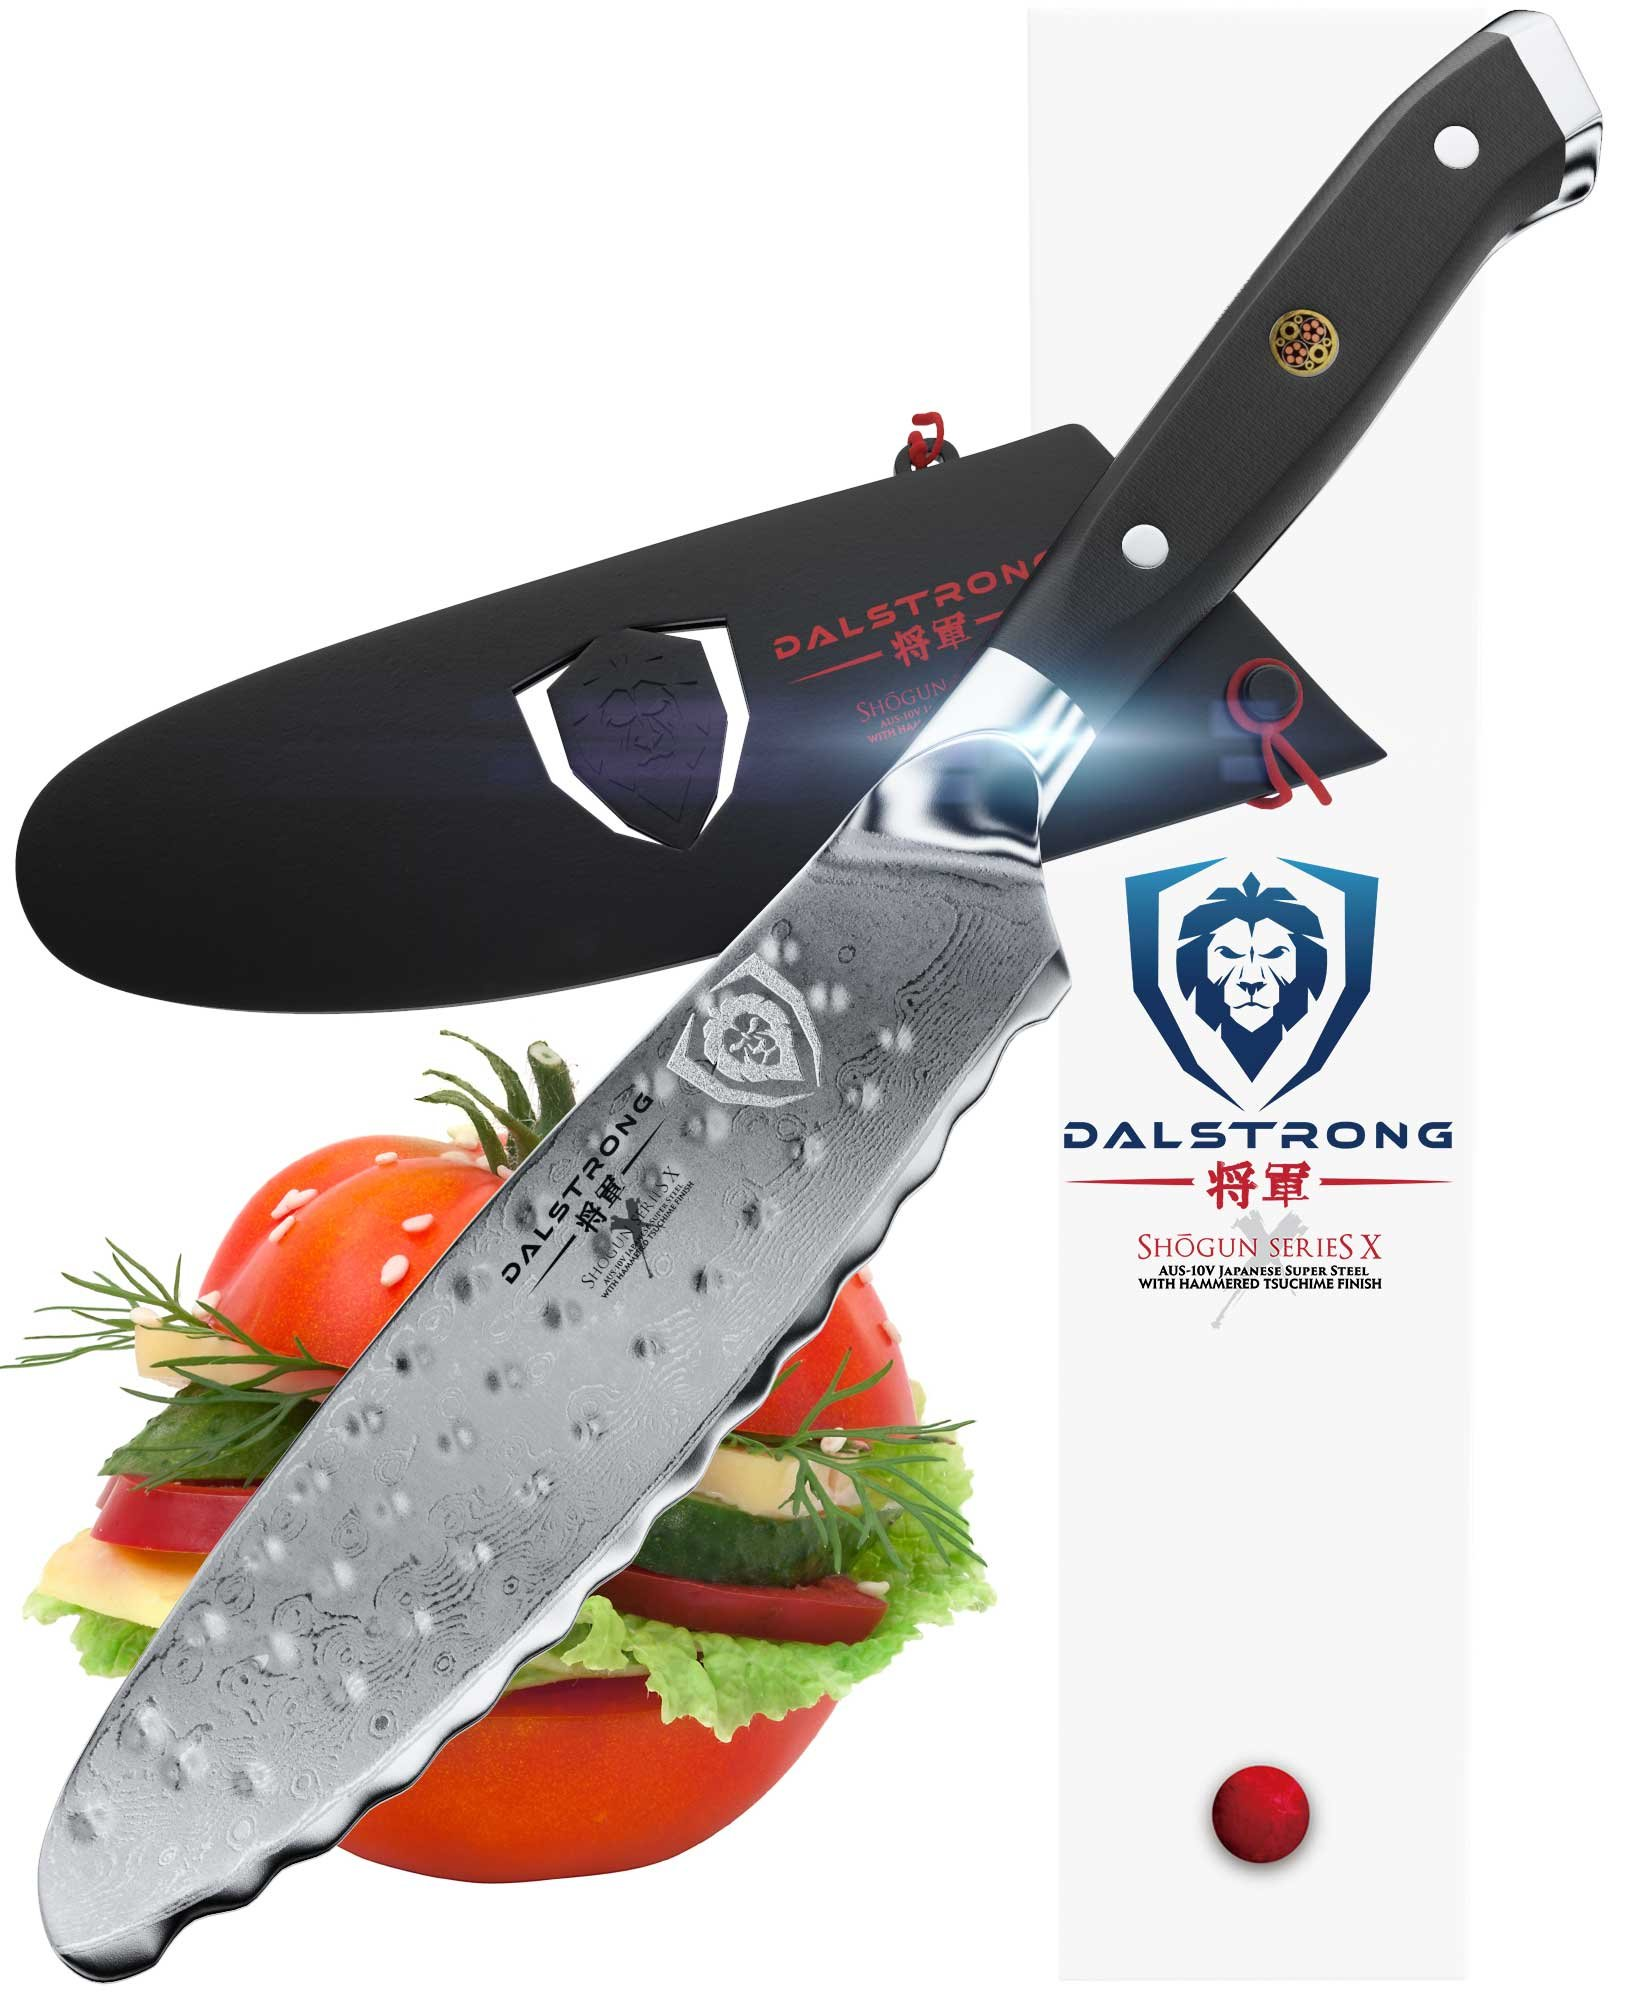 Dalstrong Ultimate Utility Knife - Shogun Series X - 6'' Sandwich Knife and Spreader- Japanese AUS-10V - Vacuum Treated - Guard Included